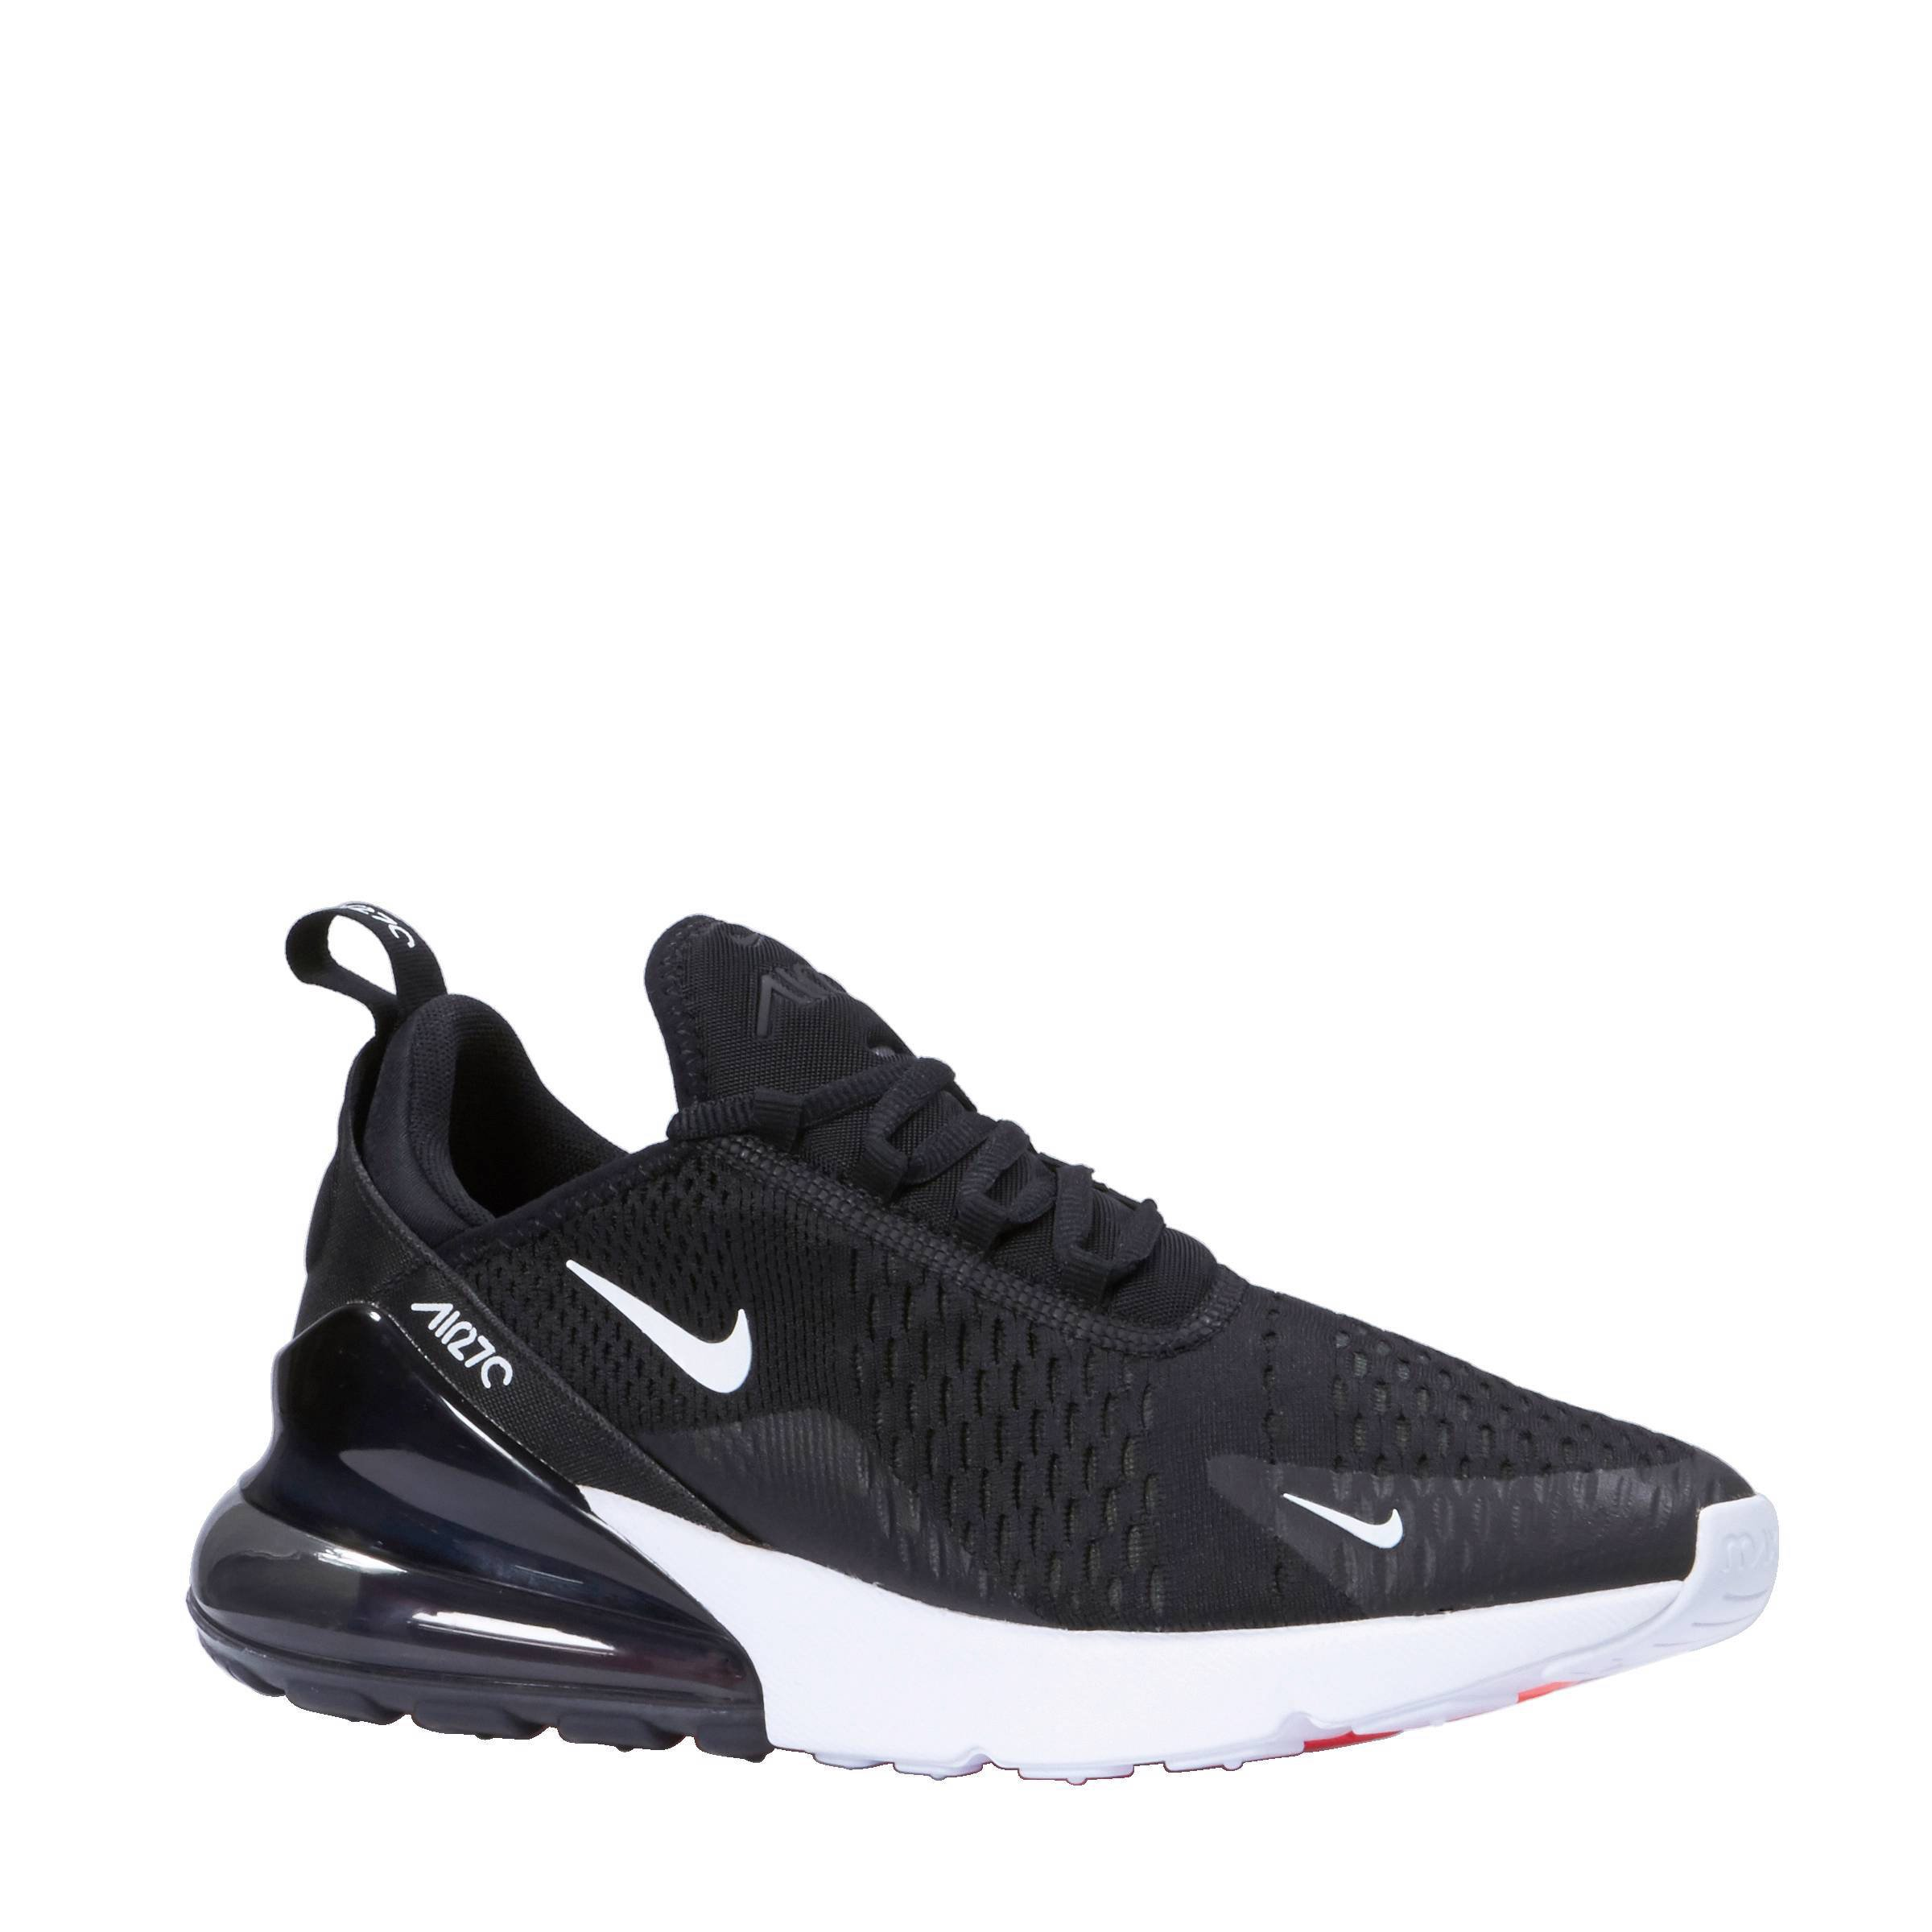 zwarte nike air max heren sale